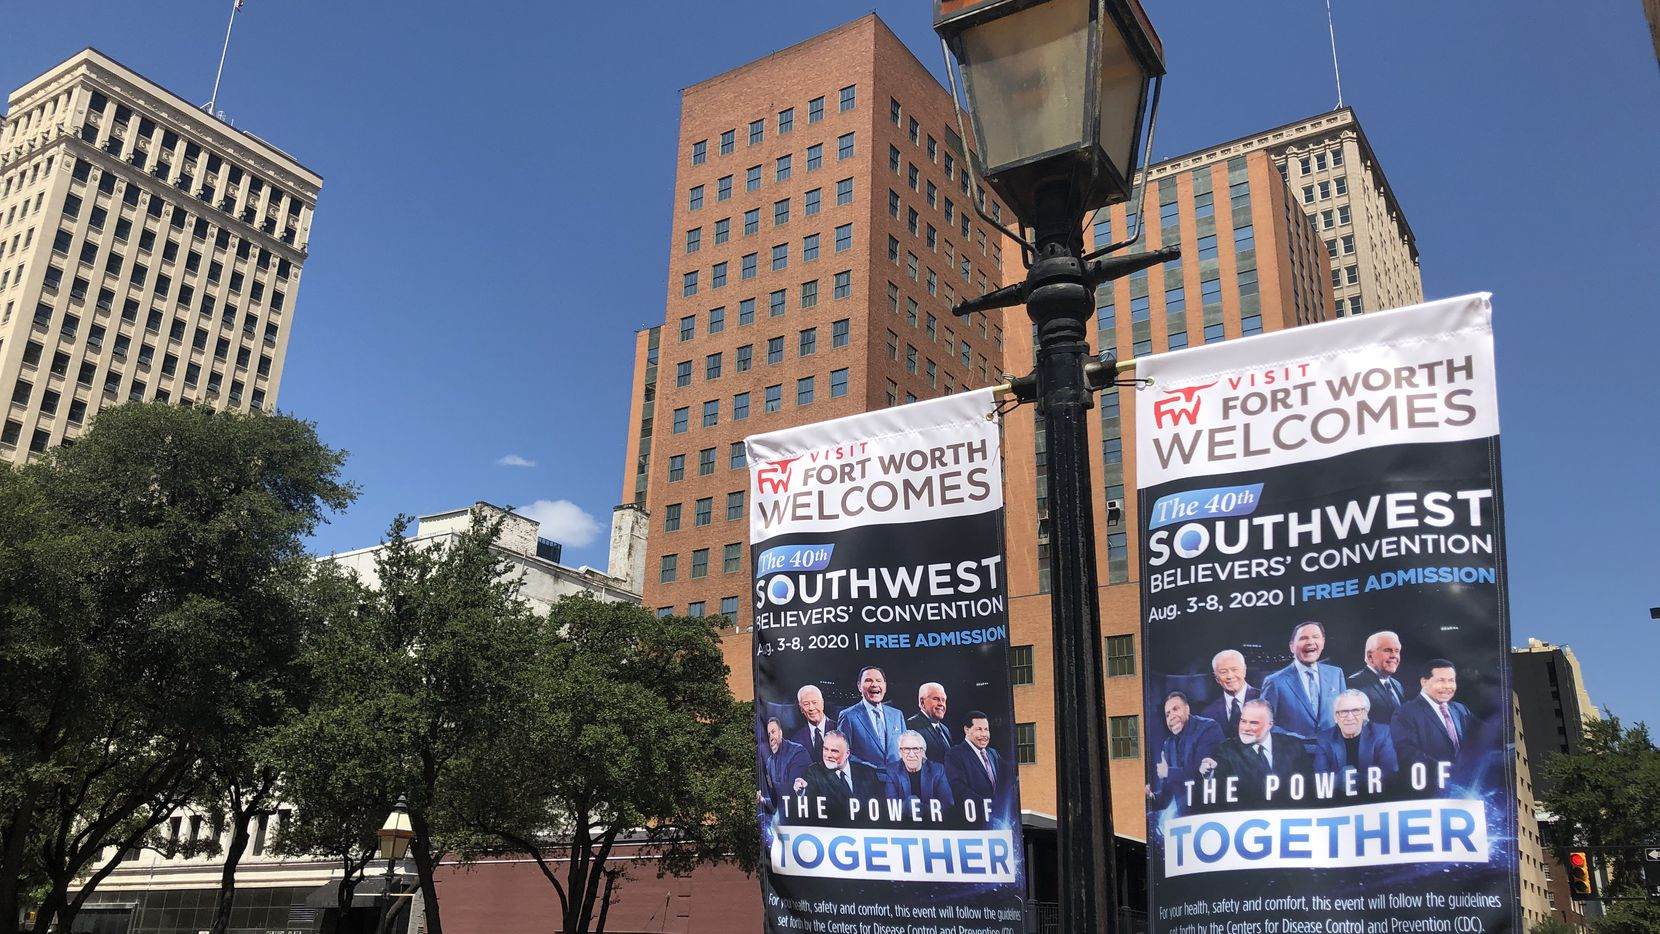 Banners for Kenneth Copeland's religious revival hang on Fort Worth streets. The event was Aug. 3-8, 2020 during the pandemic.